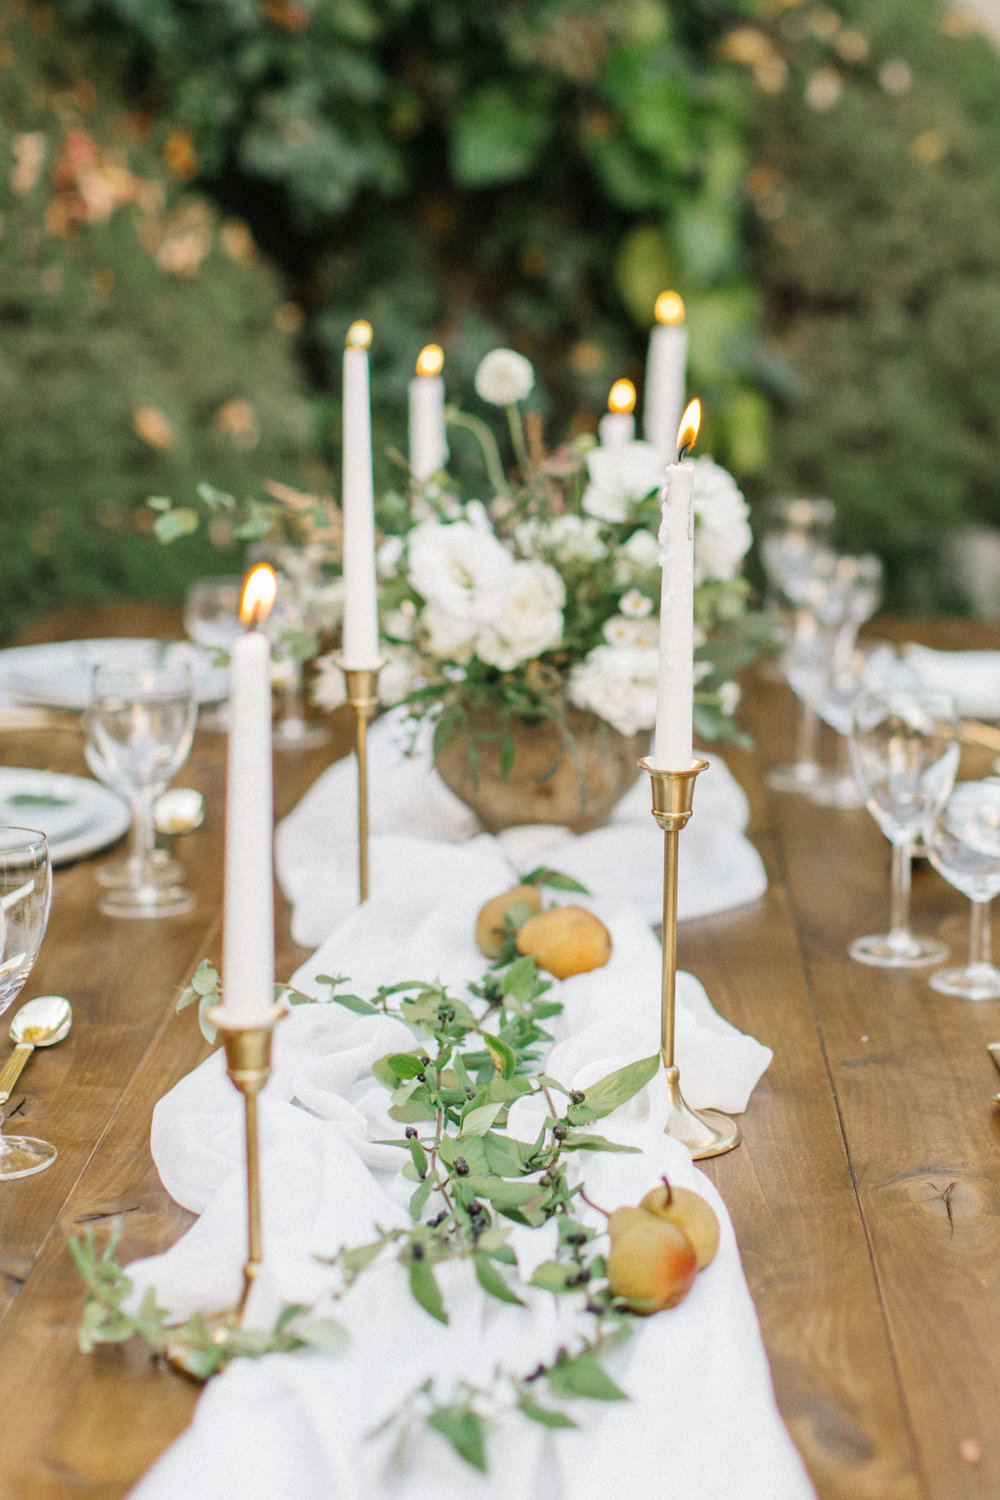 Mila Adams - Kentucky Utah Wedding Florist - White Centerpieces Garden Style